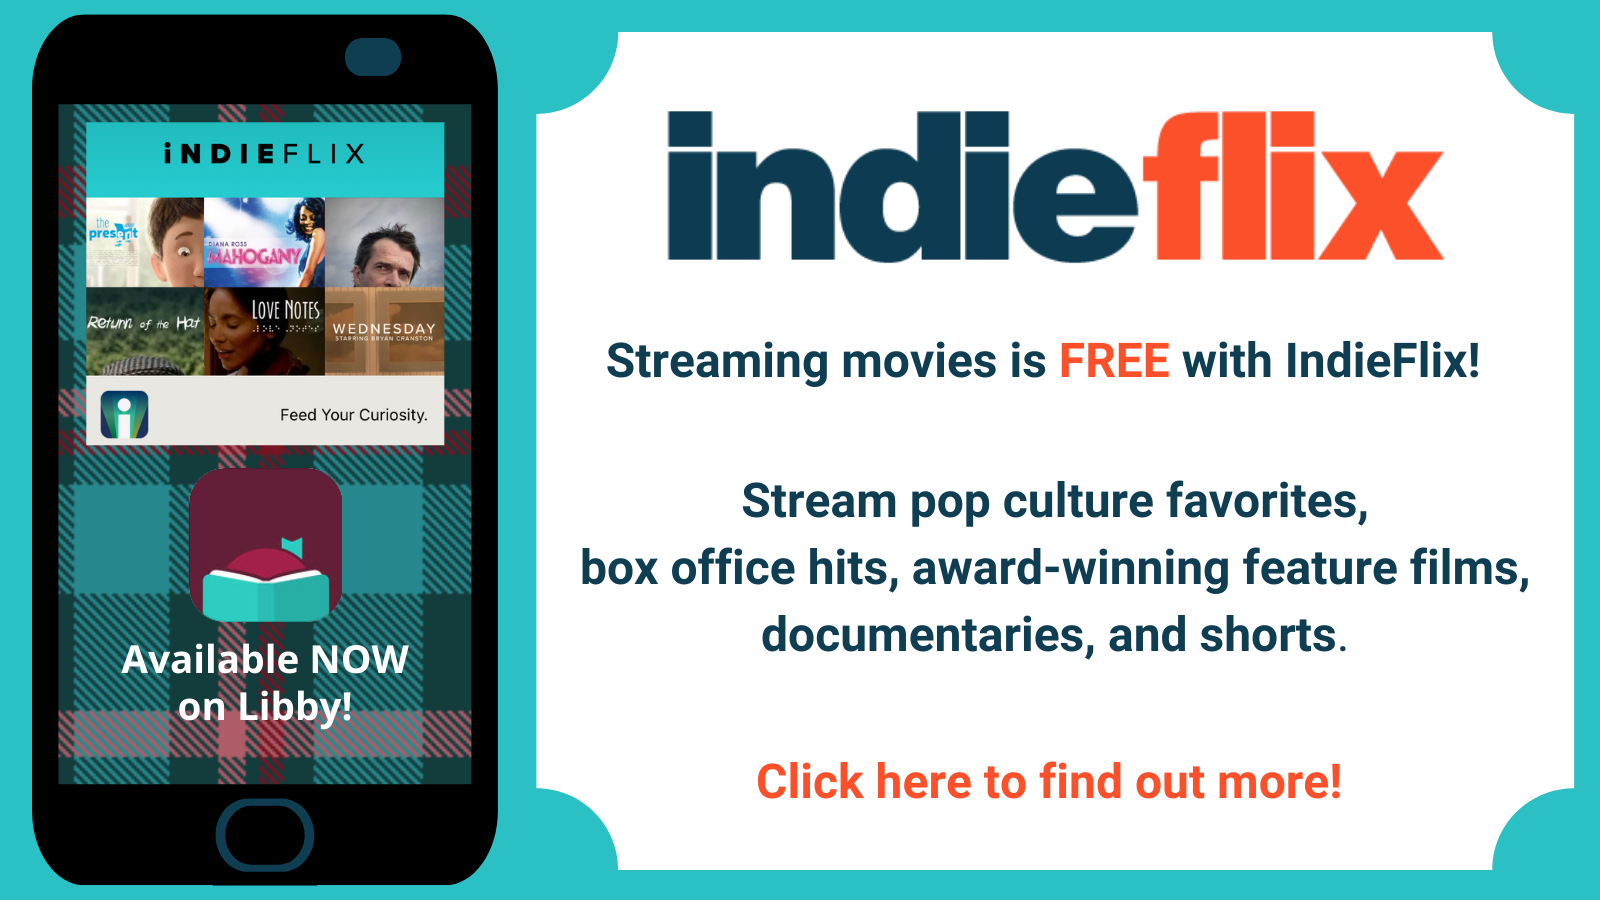 IndieFlix--Now on Libby!